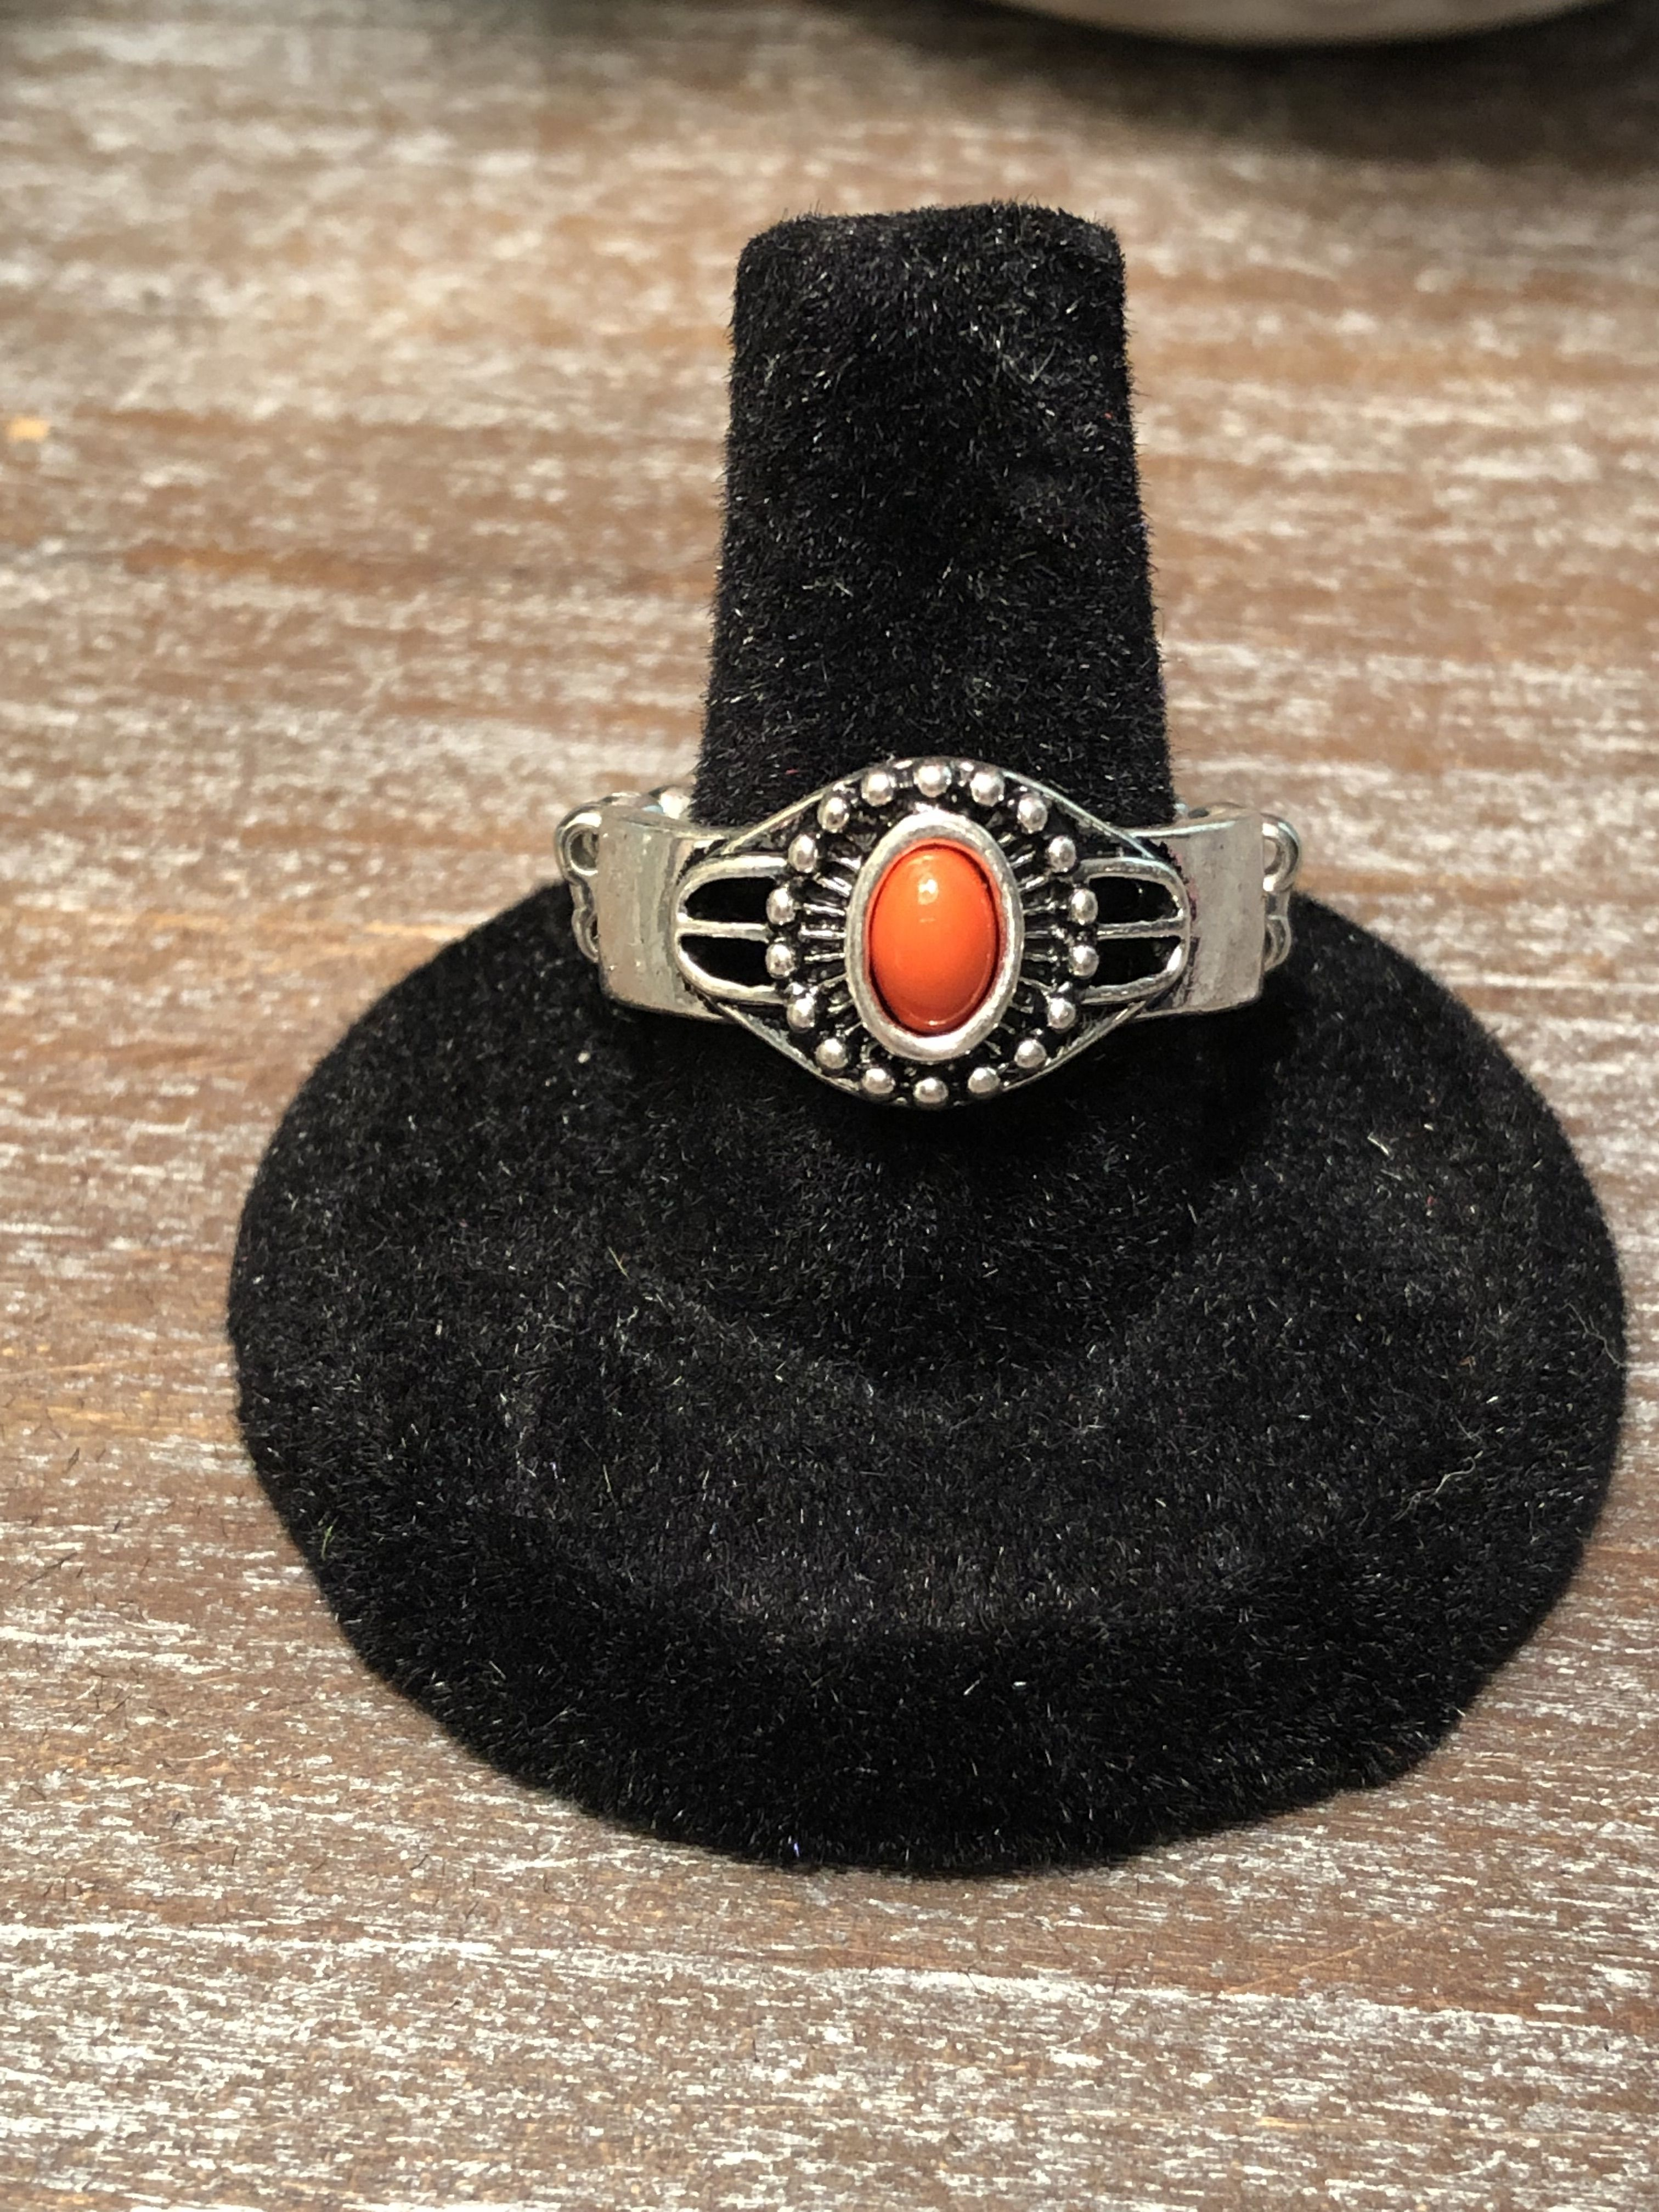 claddagh ring how to wear it the right way